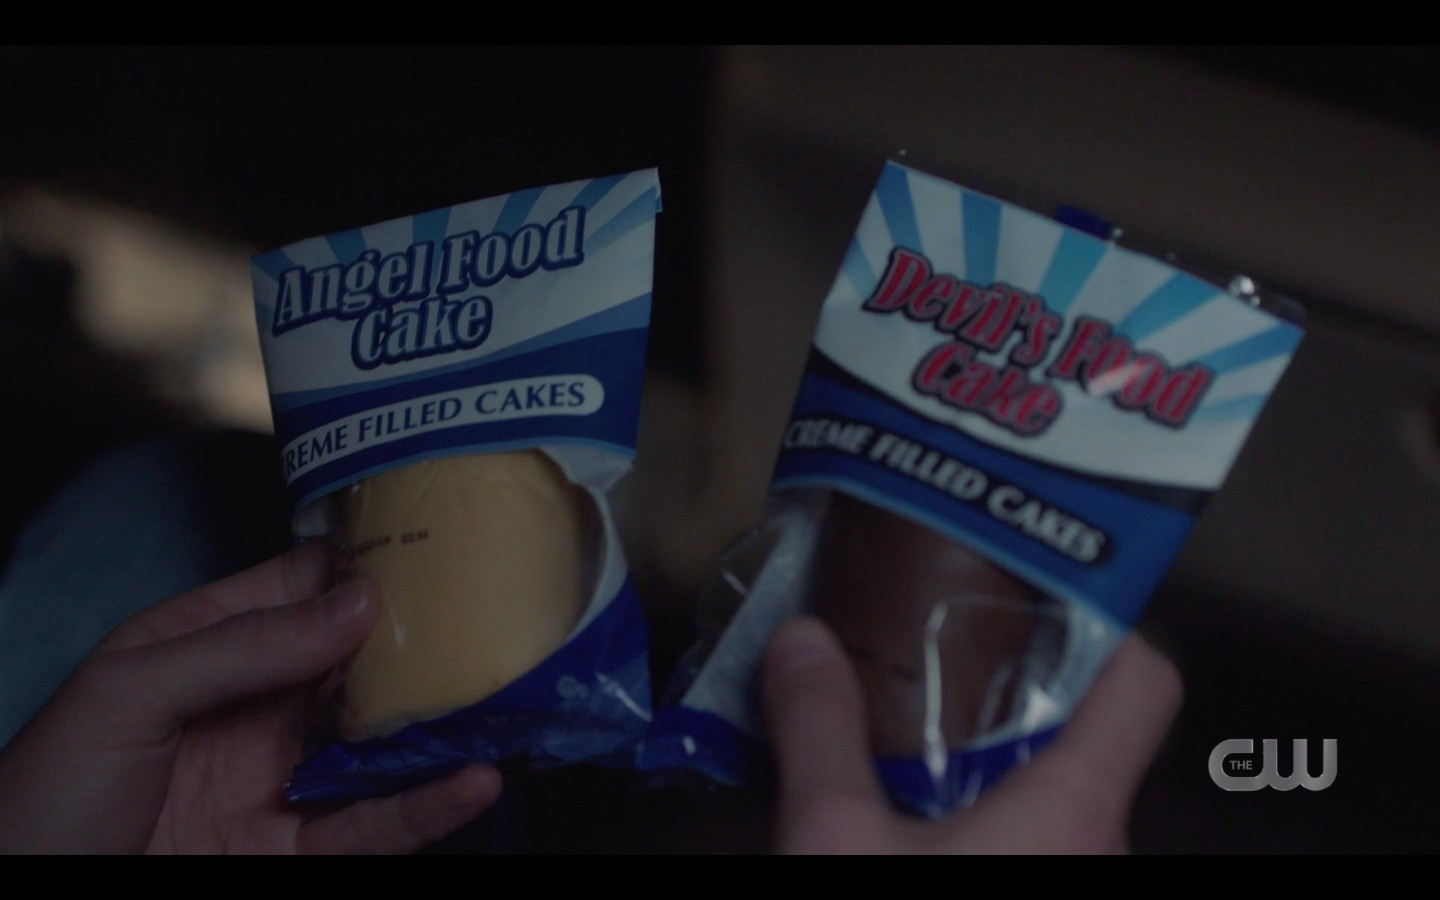 Dean gives Jack choice of Angel Food or Devels food twinkies spn 1415